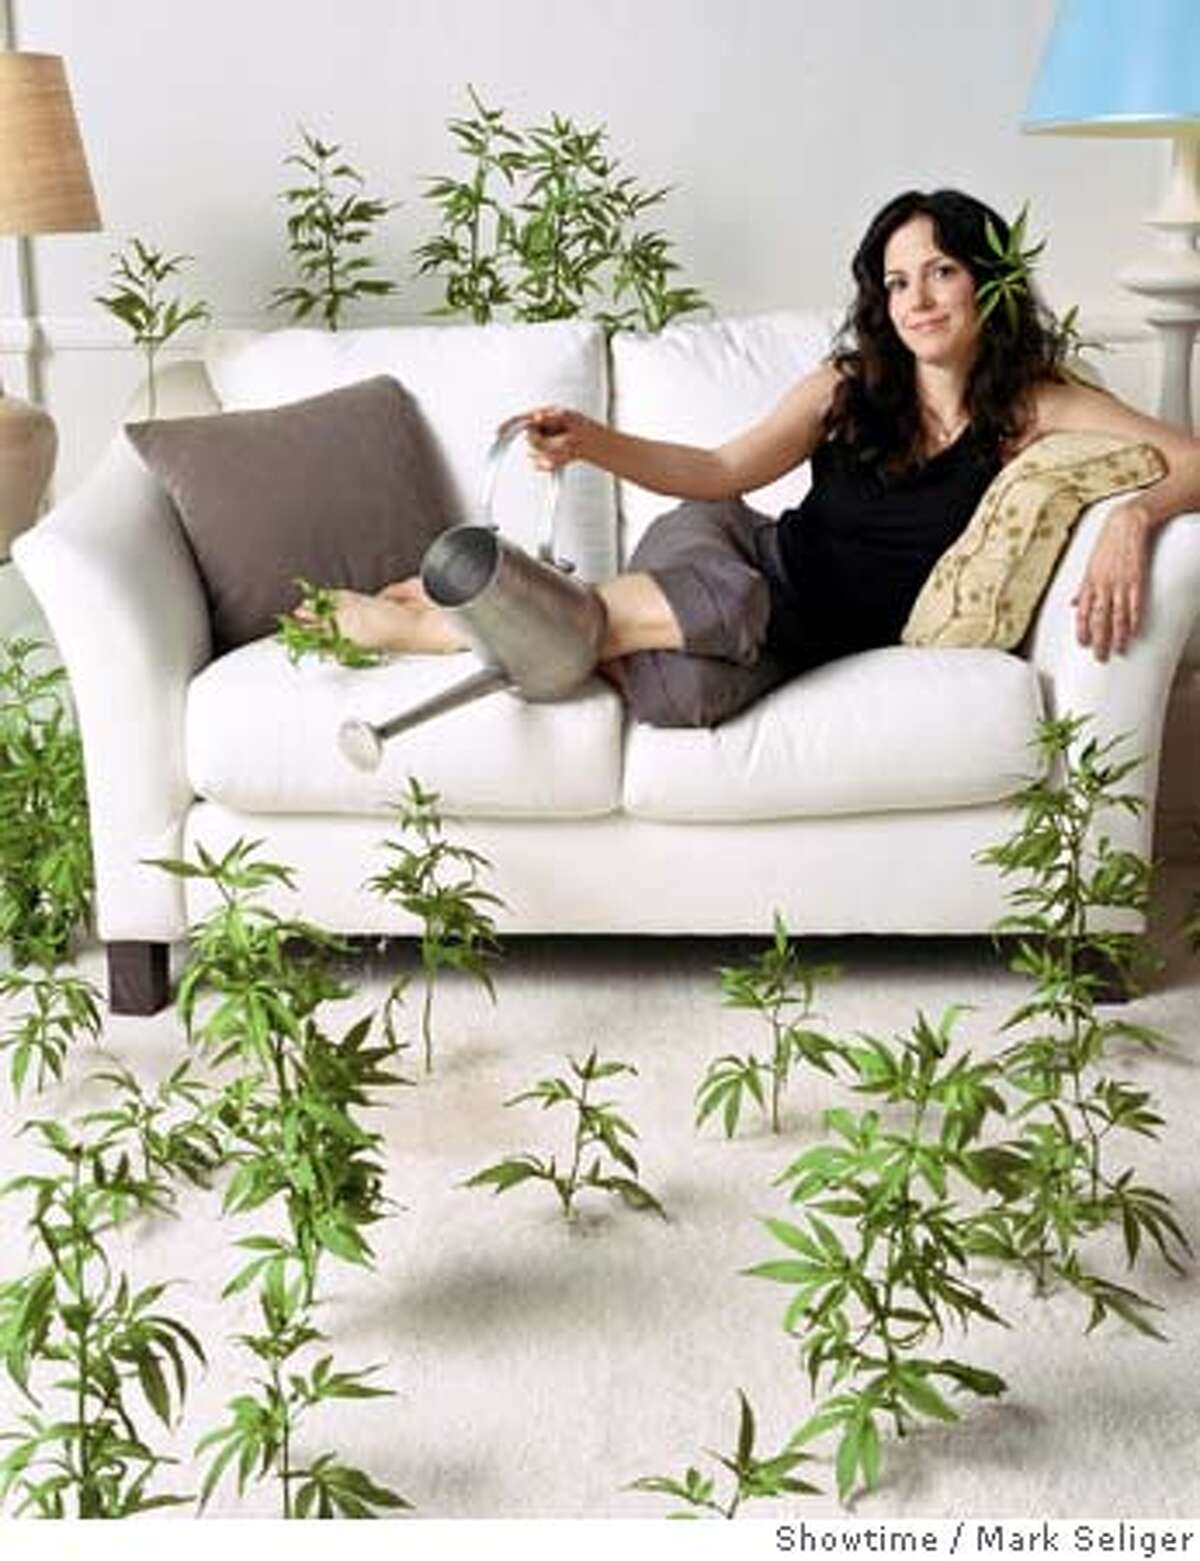 Mary-Louise Parker as Nancy Botwin Photo: Mark Seliger/Showtime Photo ID: Weeds_Presskit_WW4